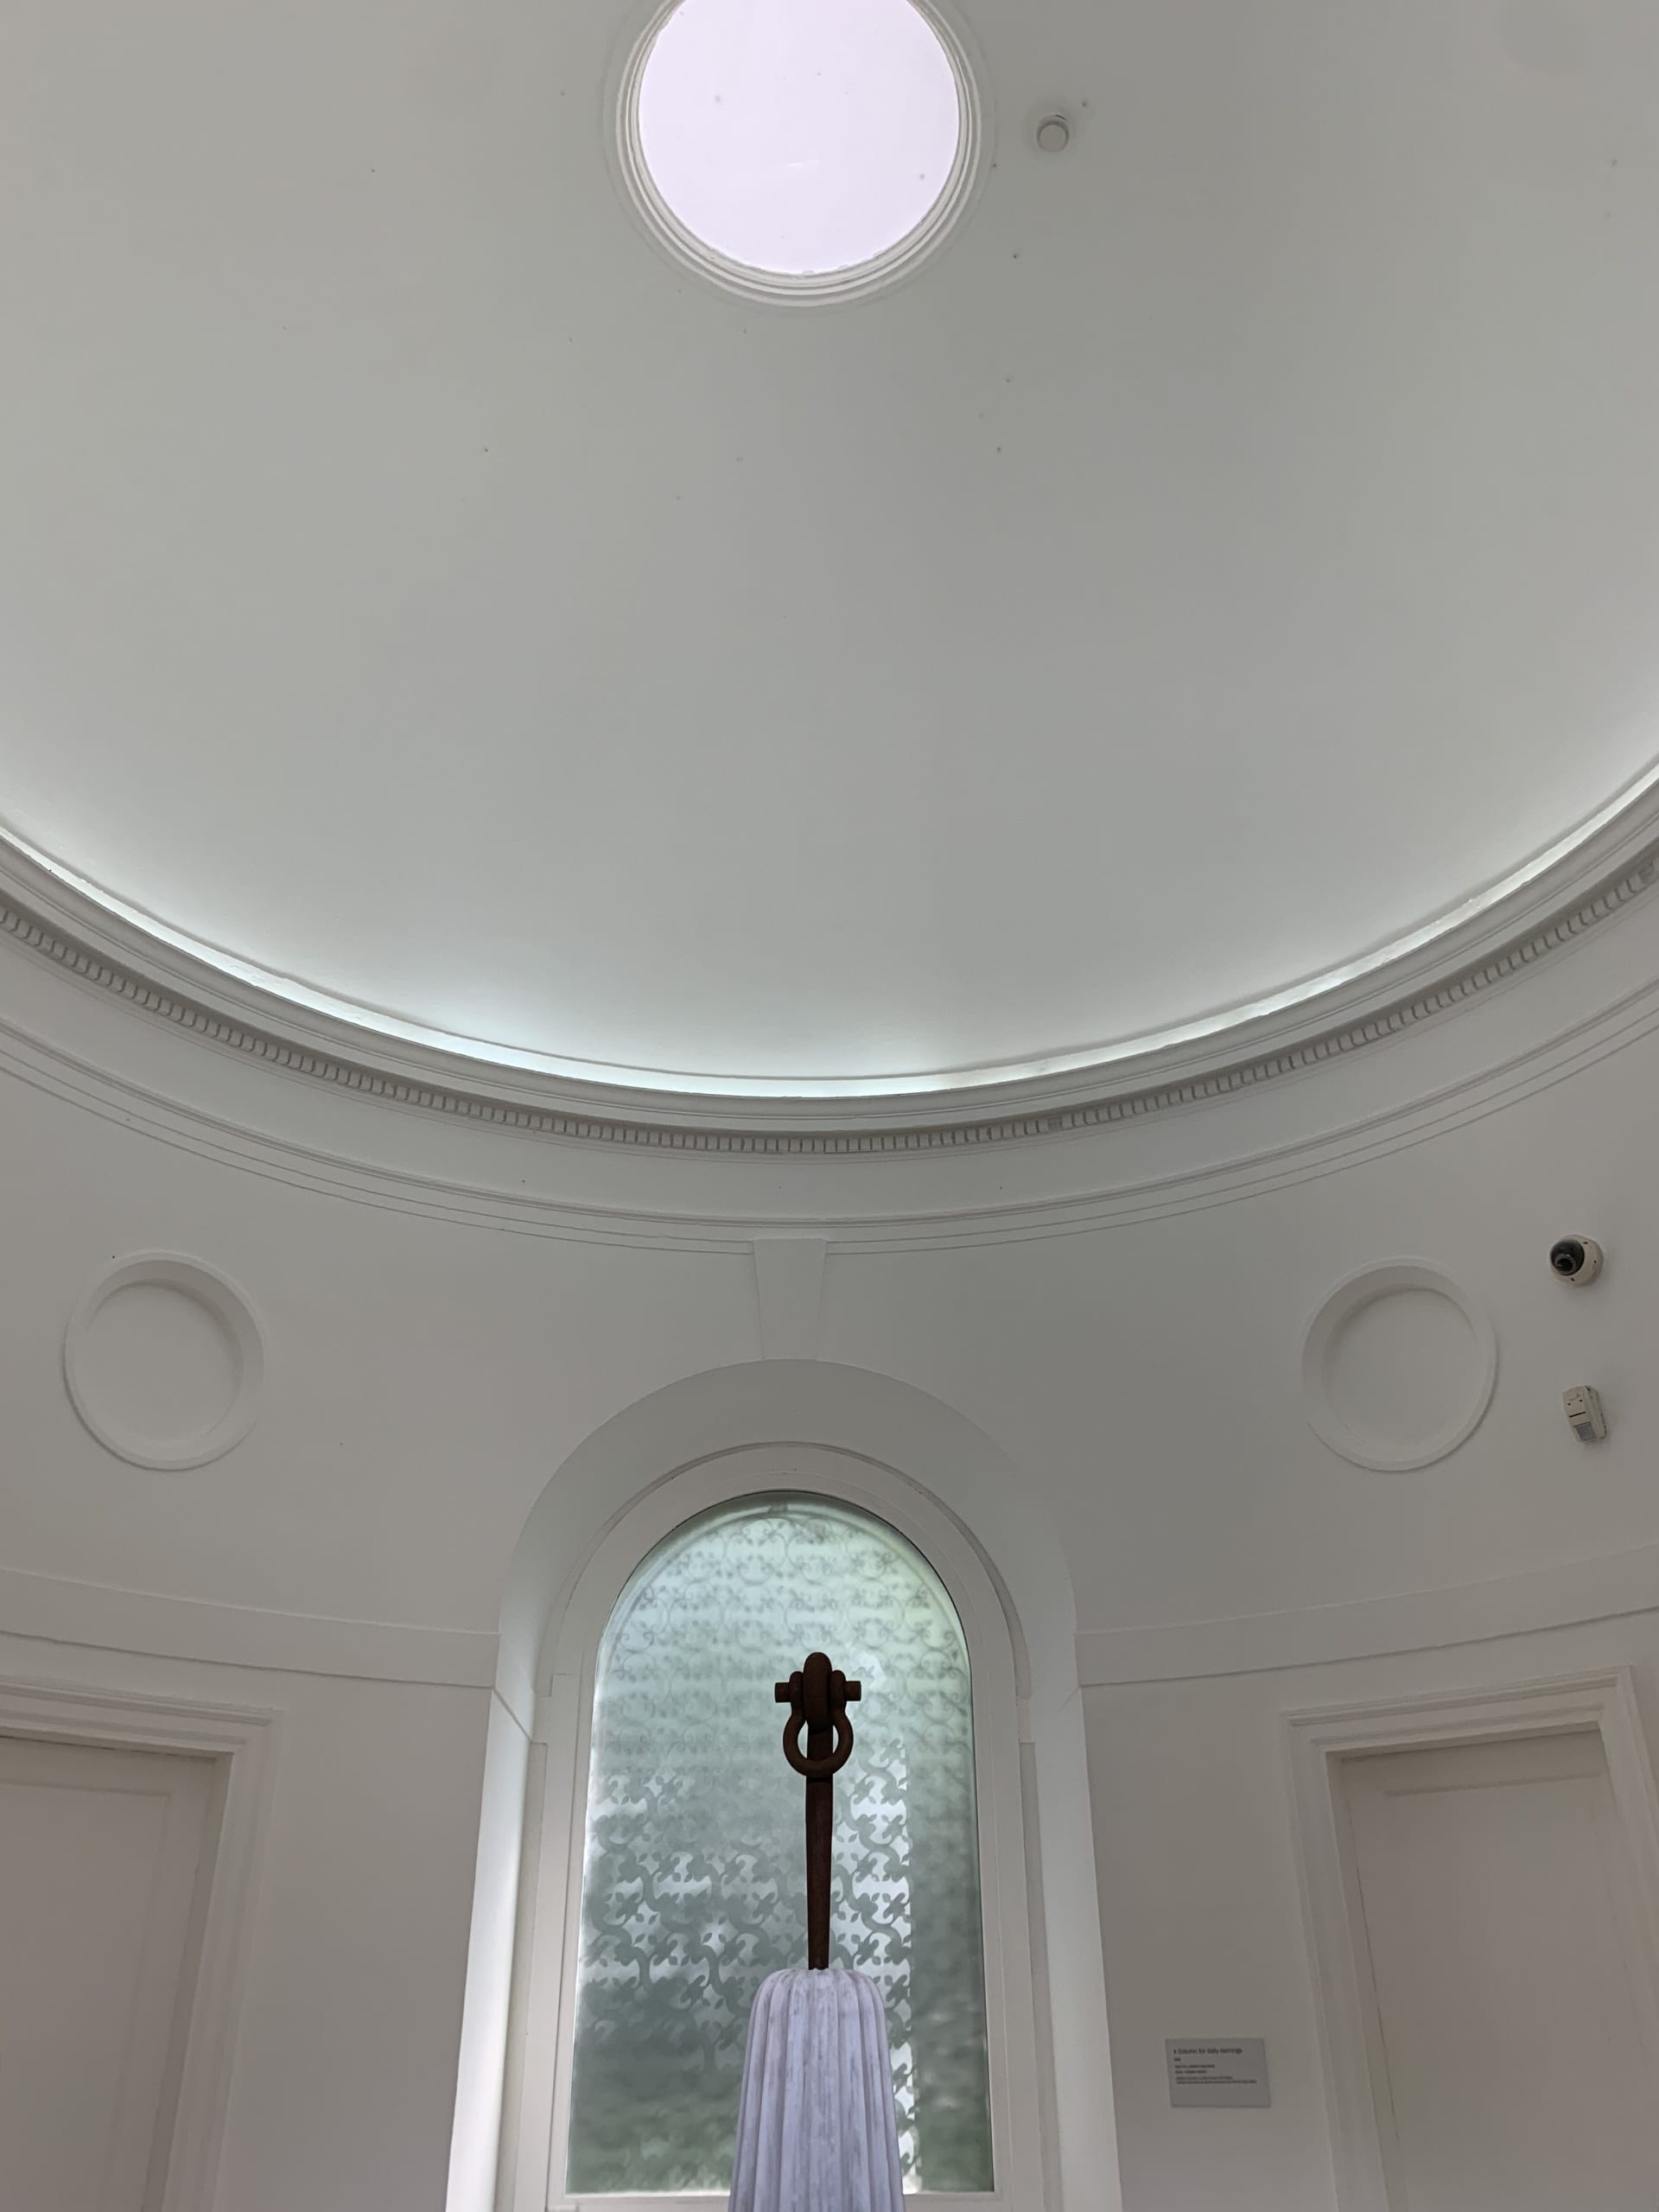 light-filled Neo-Classical rotunda with an oculus. A tapered column from which a single iron shackle rises